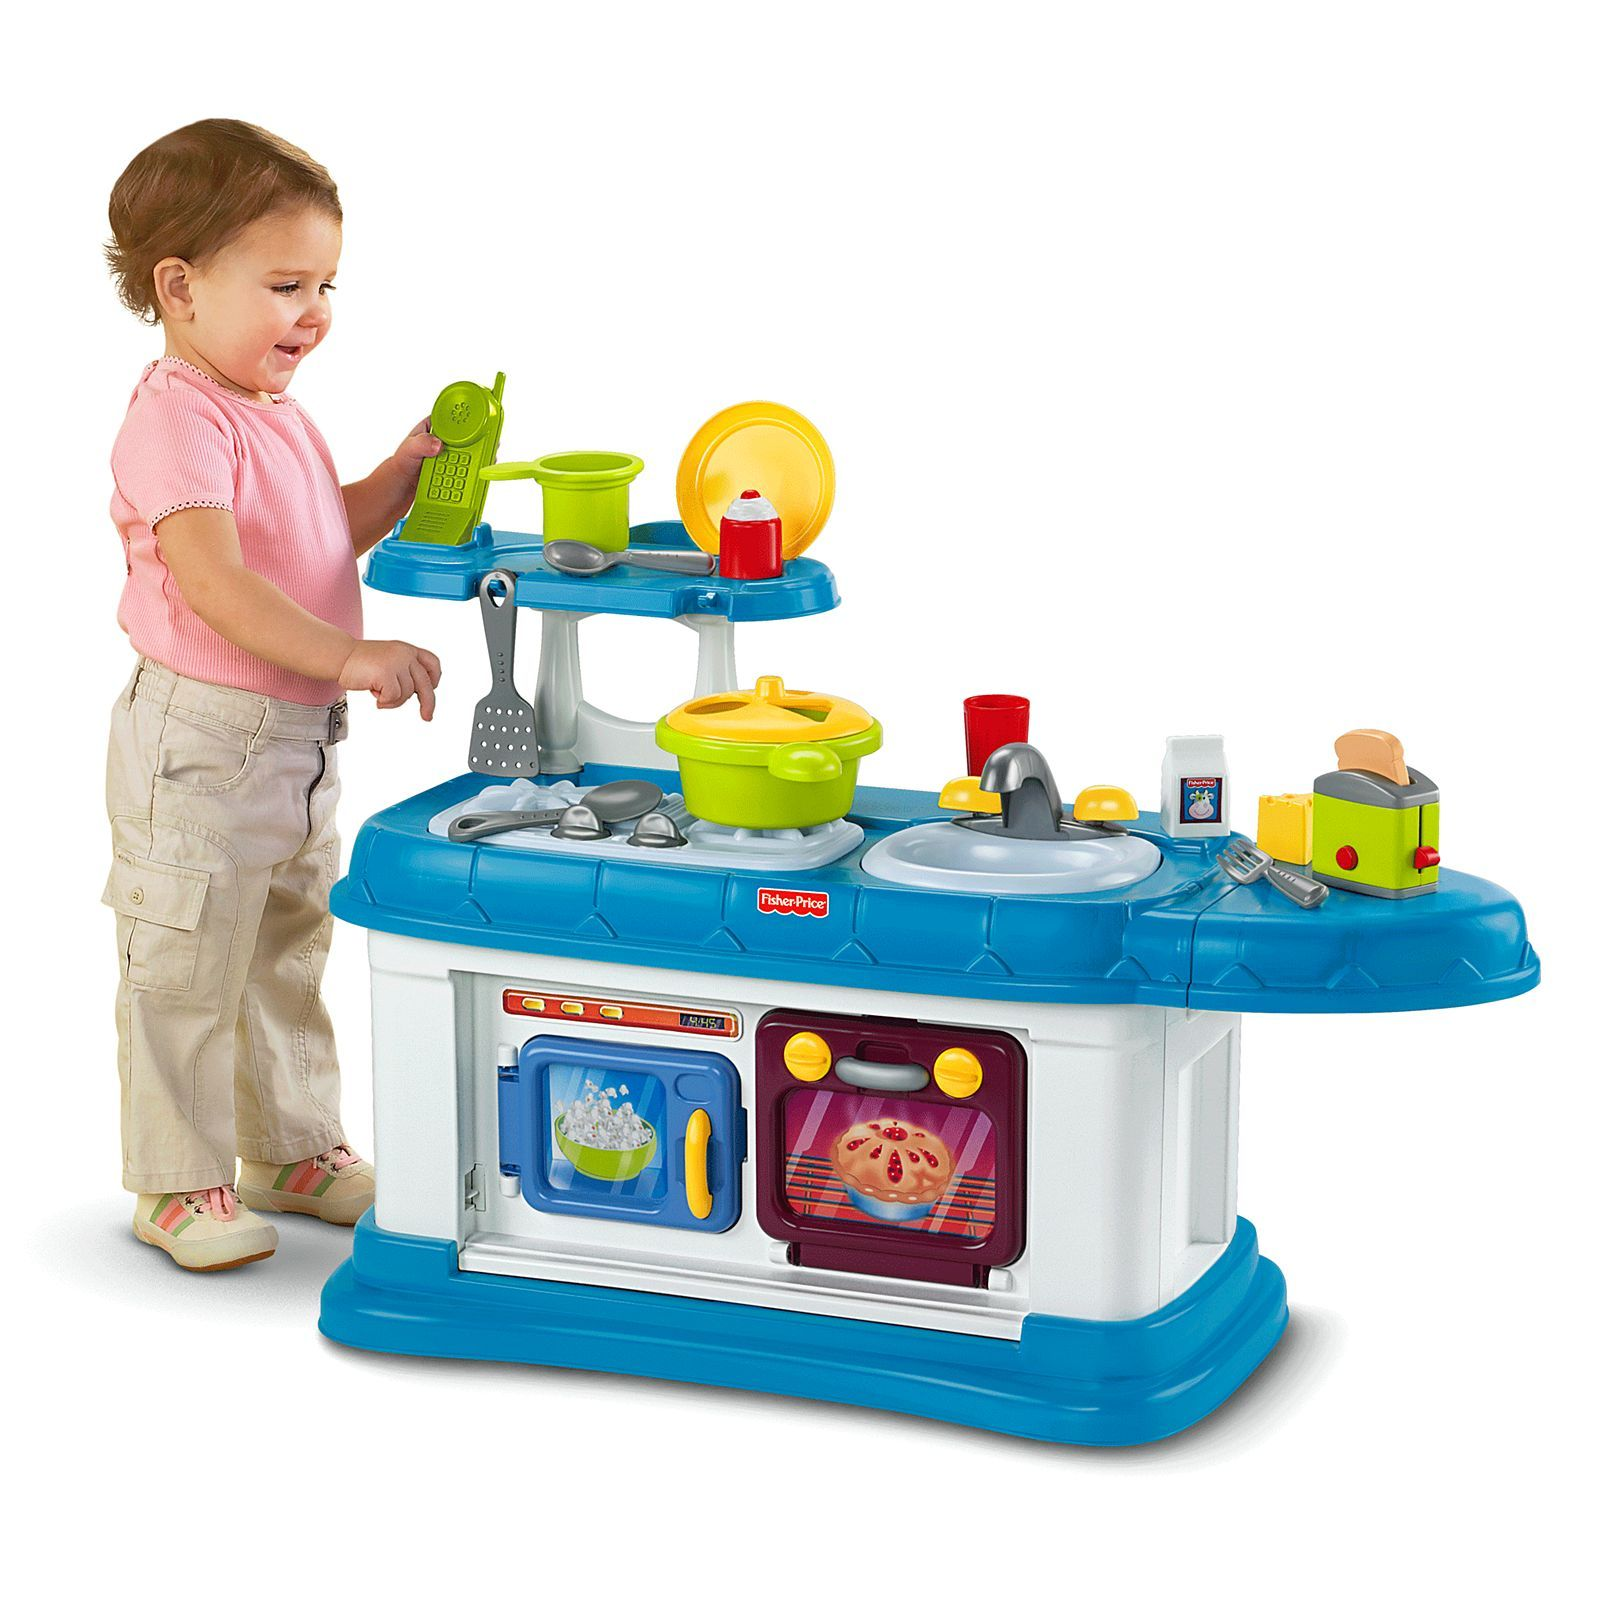 Check out the FisherPrice GrowWithMe Kitchen (T4030) at